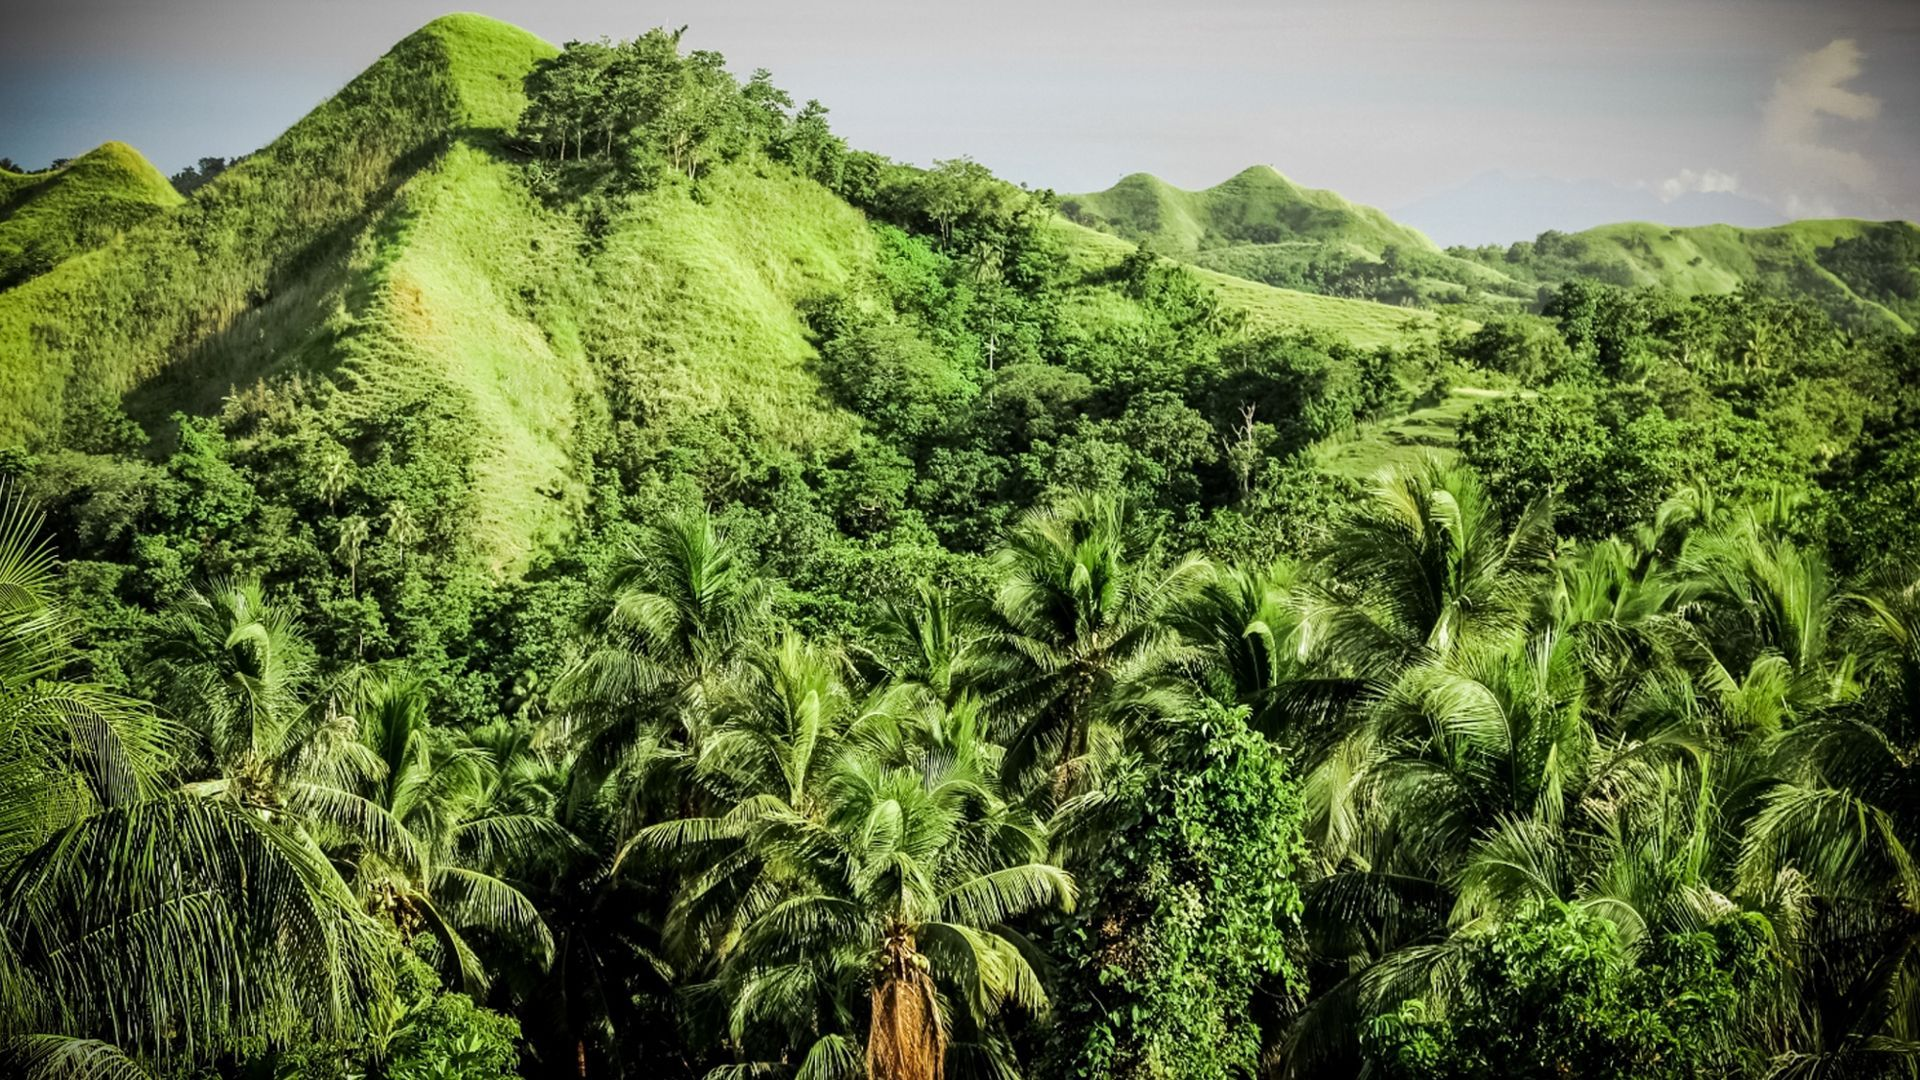 A landscape photograph of a lush, green forest